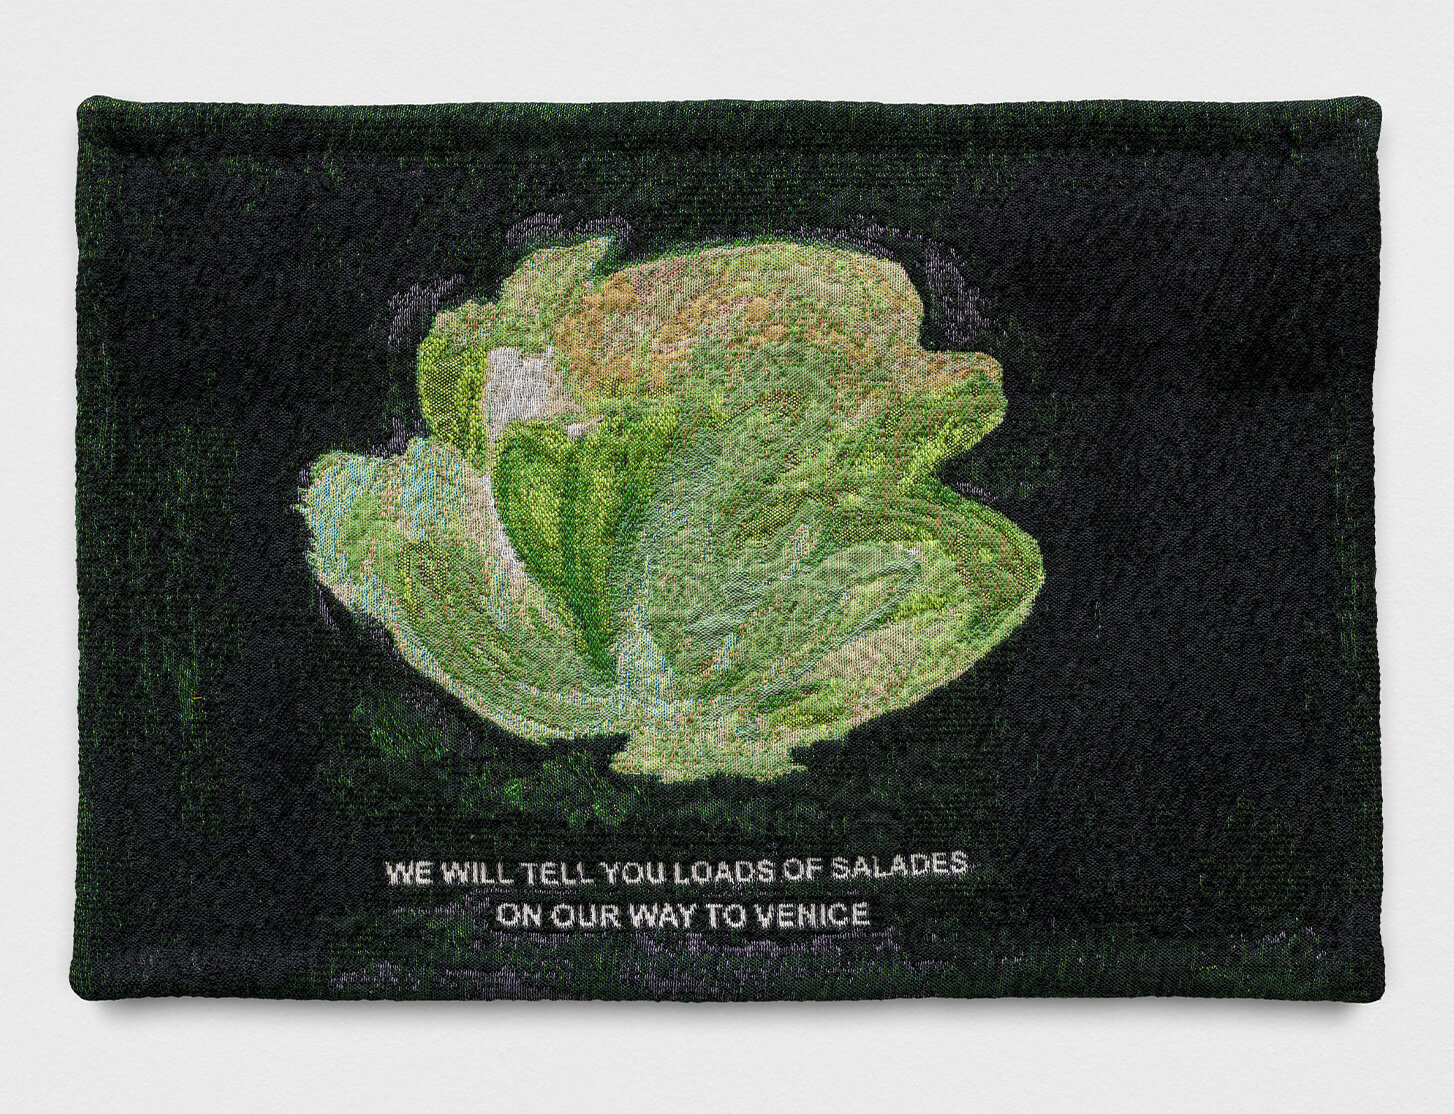 Tapestry by Laure Prouvost available for purchase, ahead of Venice Biennale